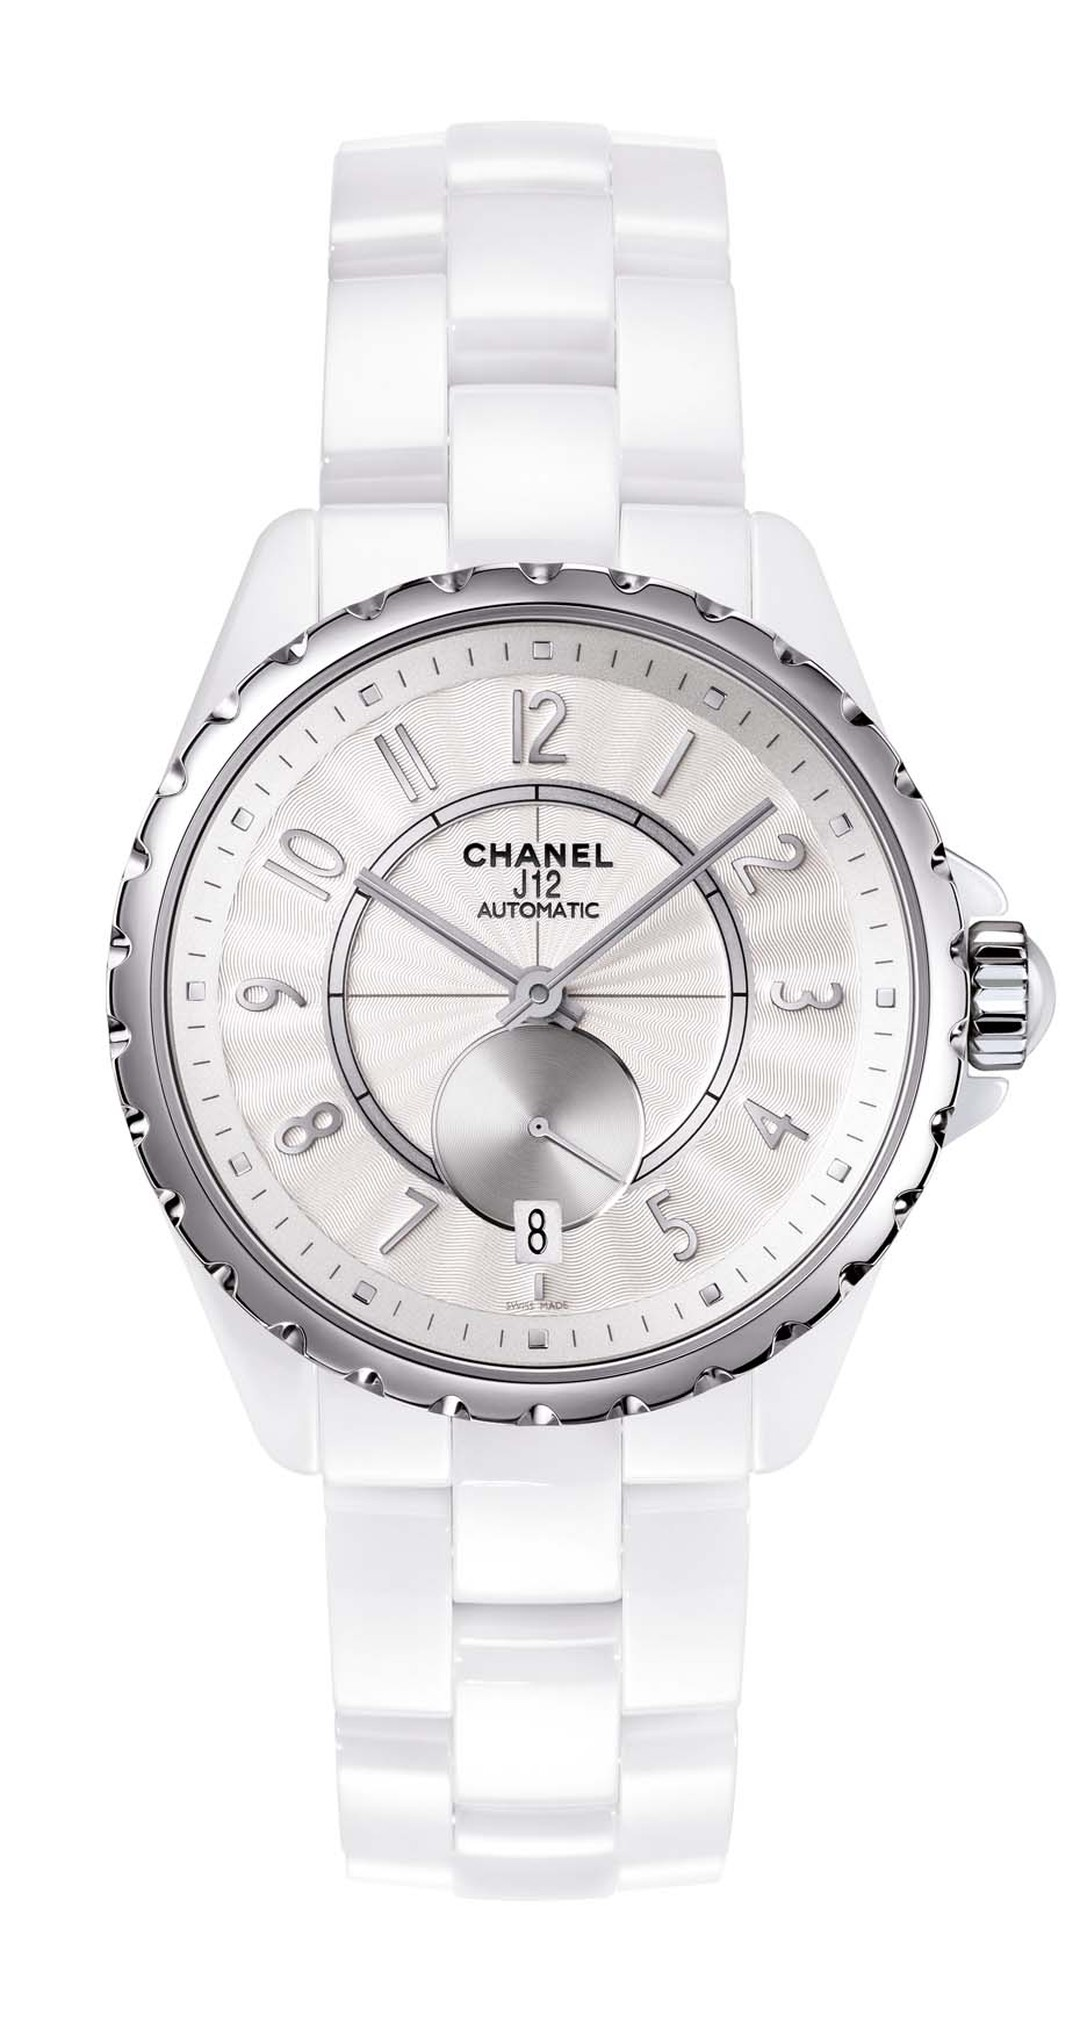 The new Chanel J12-365 watch in high-tech white ceramic, measuring a feminine 36.5mm across (£3,750).